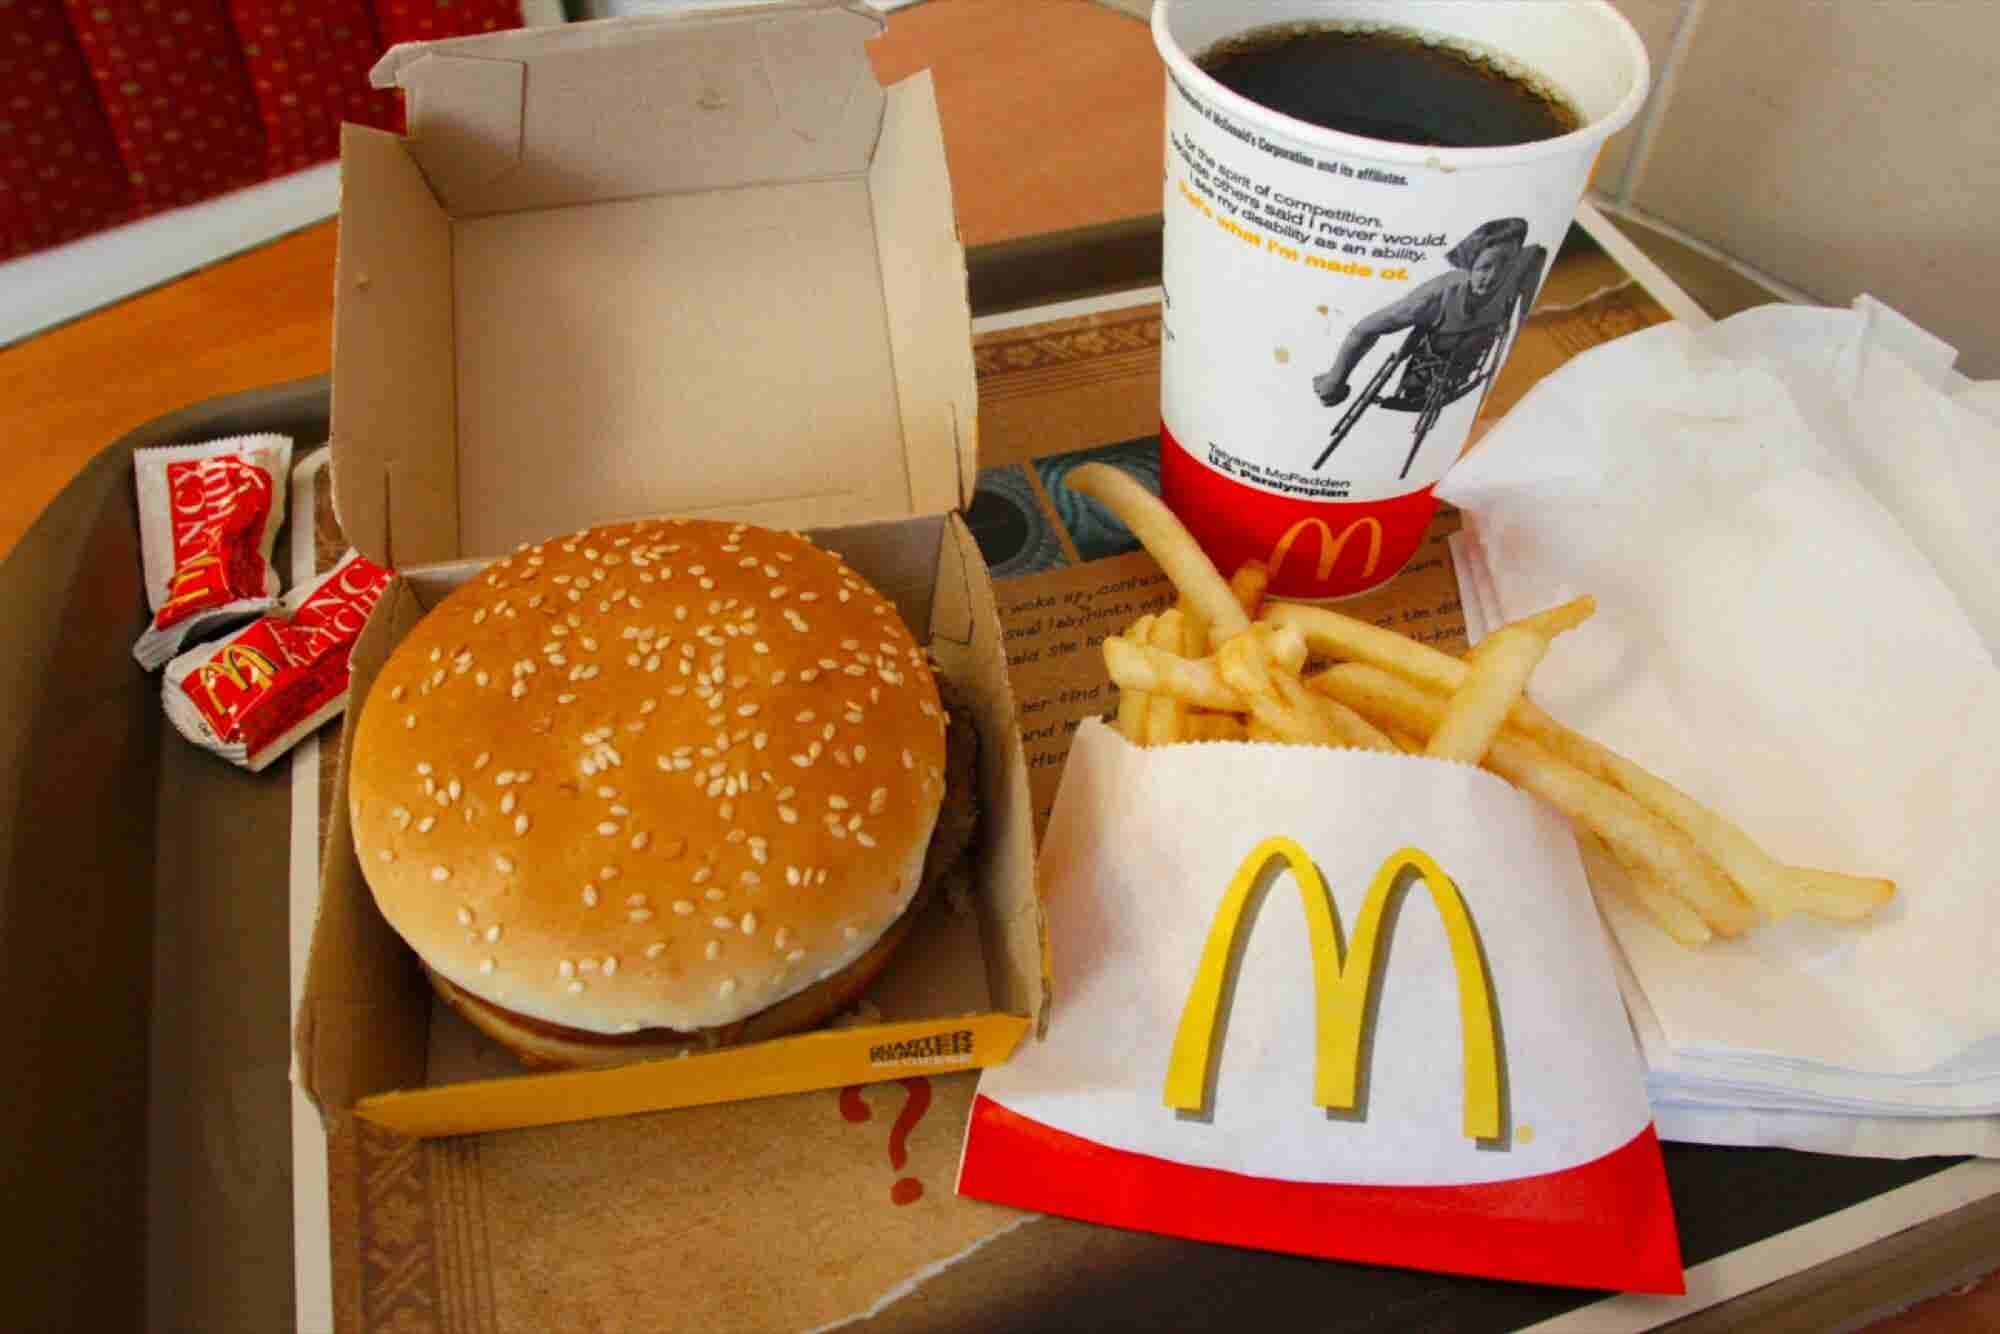 McDonald's Is Finally Catching Up to Other Fast Food Chains in One Big Way